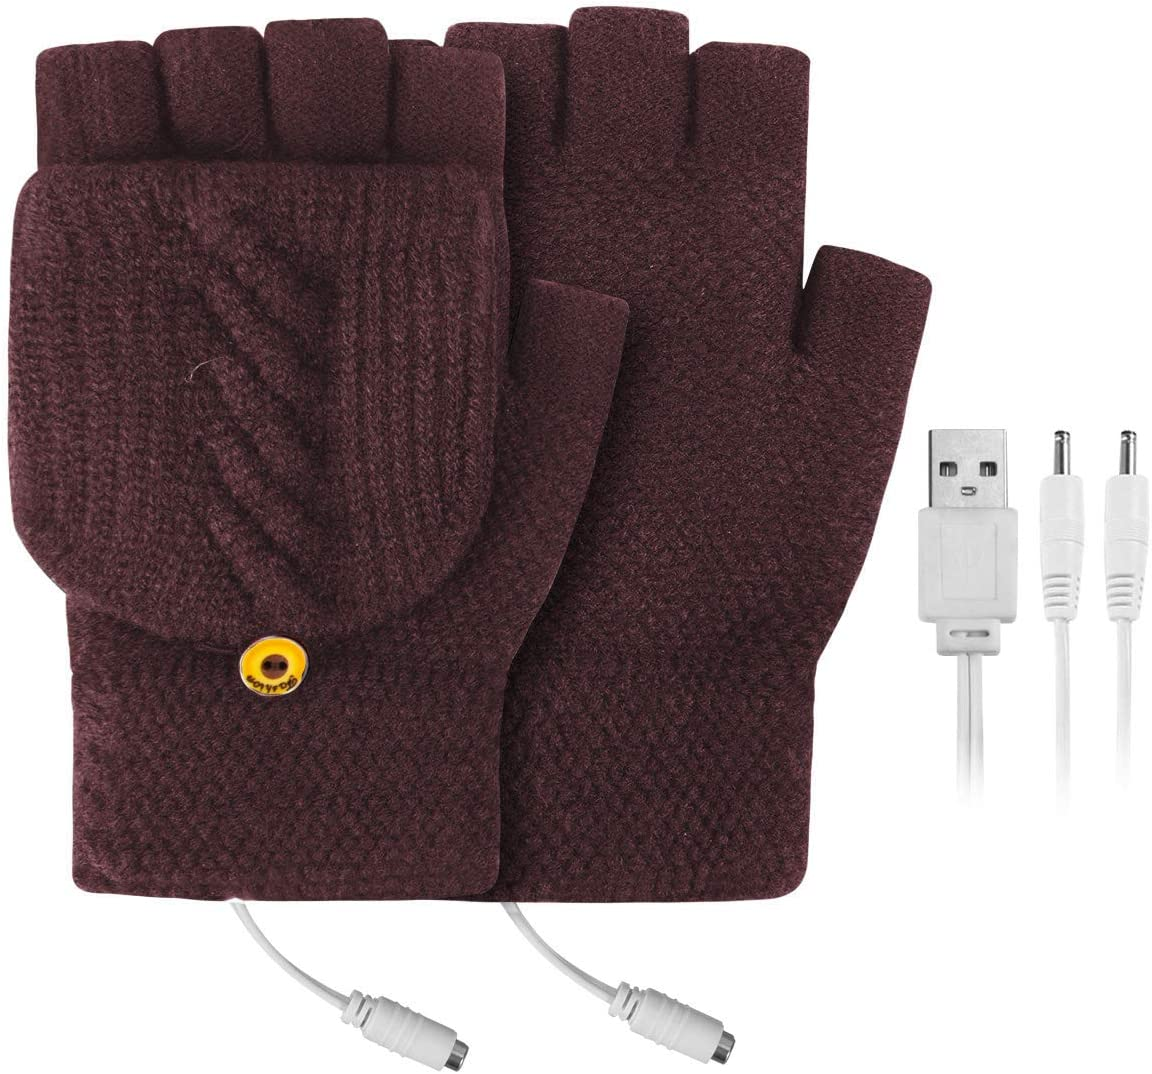 FAMKIT USB Heated Gloves Mitten,Winter Full & Half Fingers Warmer Laptop Gloves Mittens for Best Winter Gift Choice (Need to use a Computer or Power Bank for Power Supply)